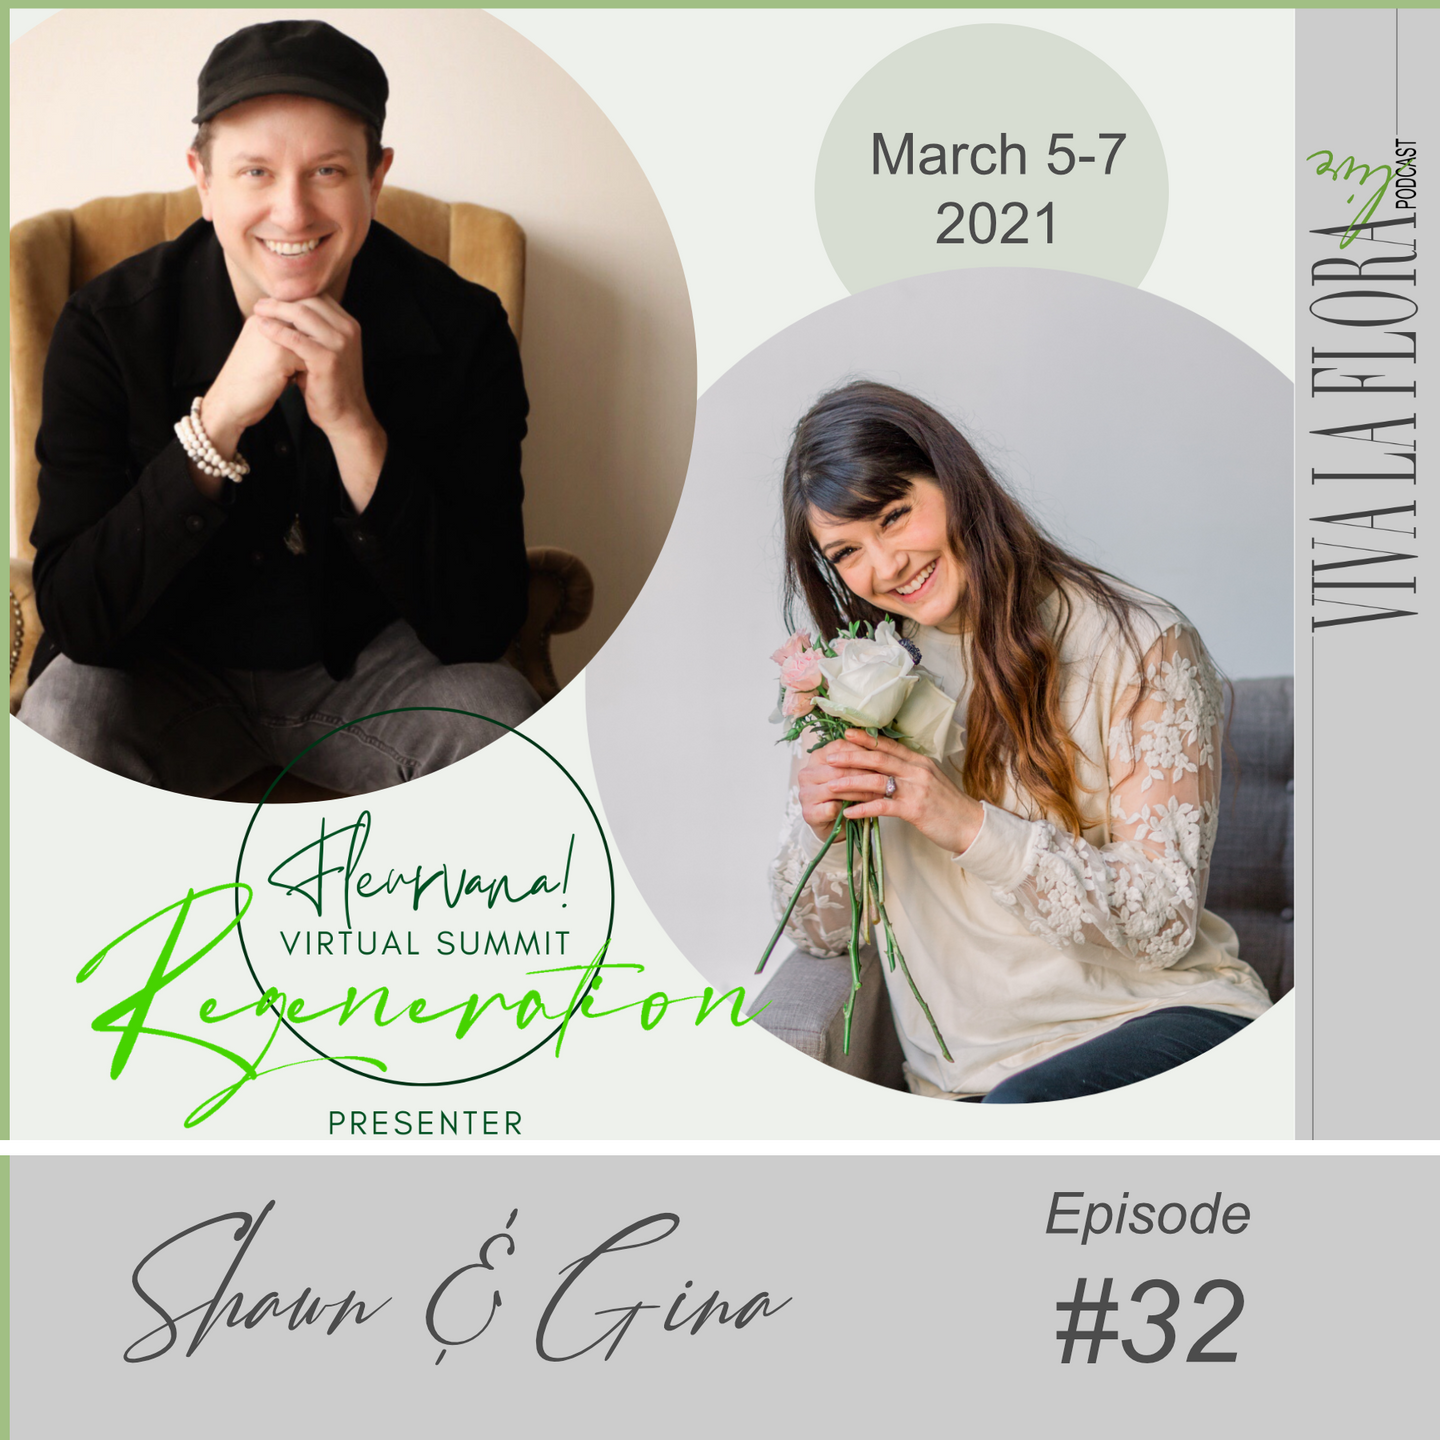 Viva La Flora Live Podcast Episode 32 with Shawn Michael Foley and Gina Thresher